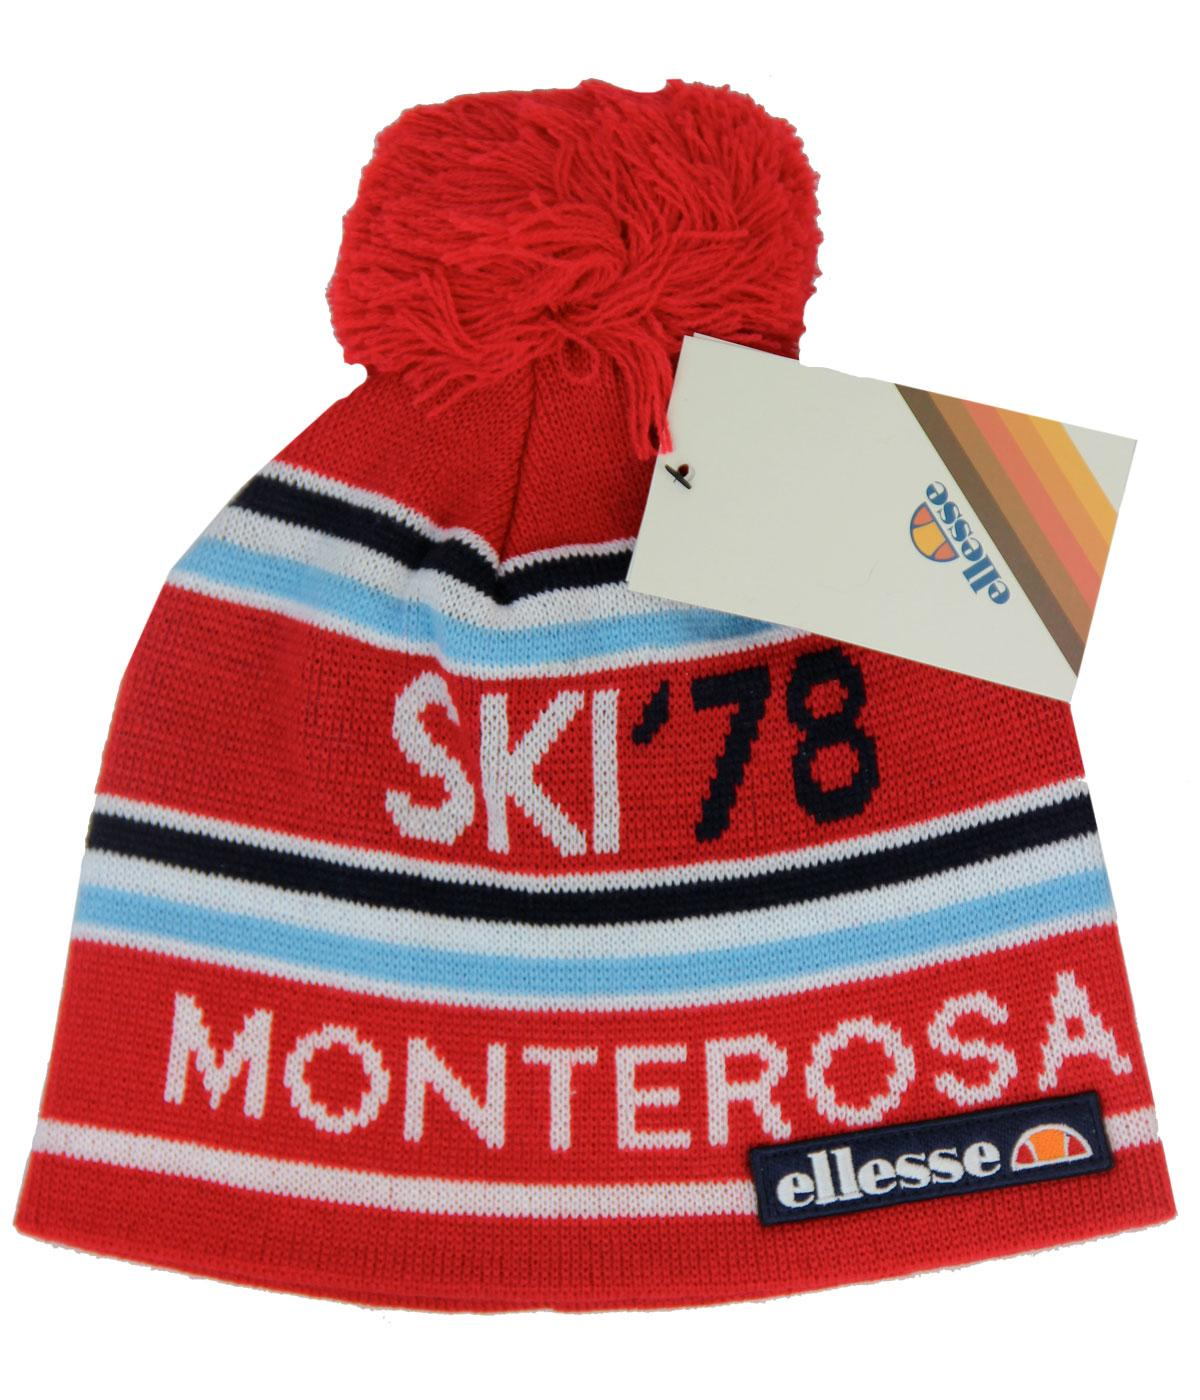 5acd211636d ELLESSE Ettore Retro 80s Indie Bobble Hat In Red